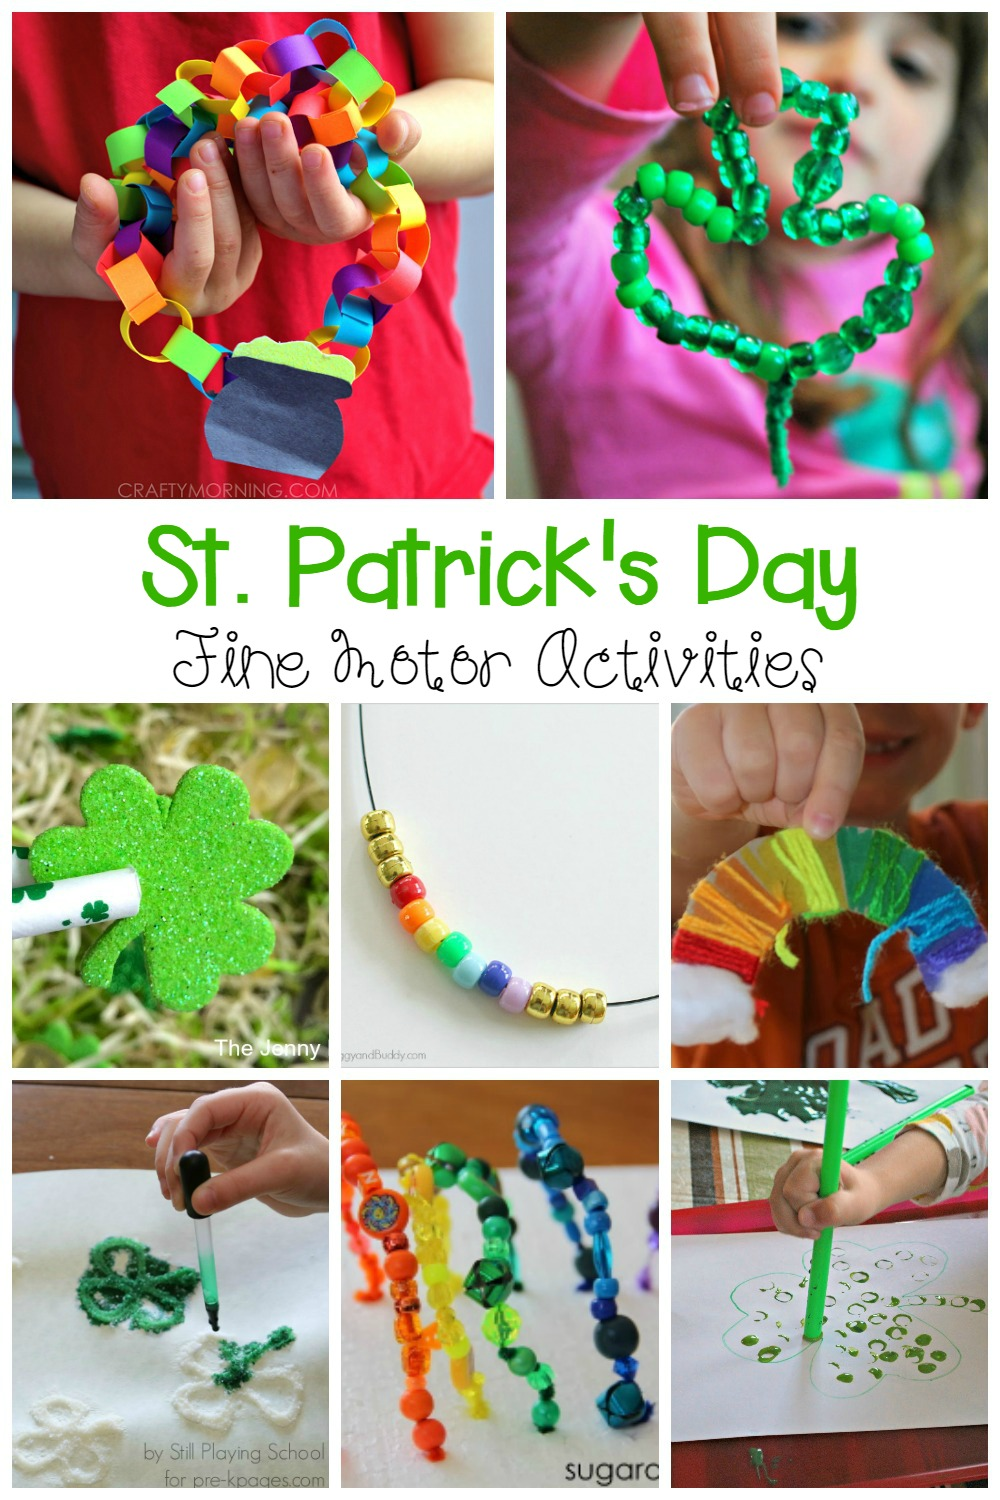 Build up fine motor skills and have a blast learning this St. Patrick's day with these awesome and fun St. Patrick's Day fine motor activities for kids!